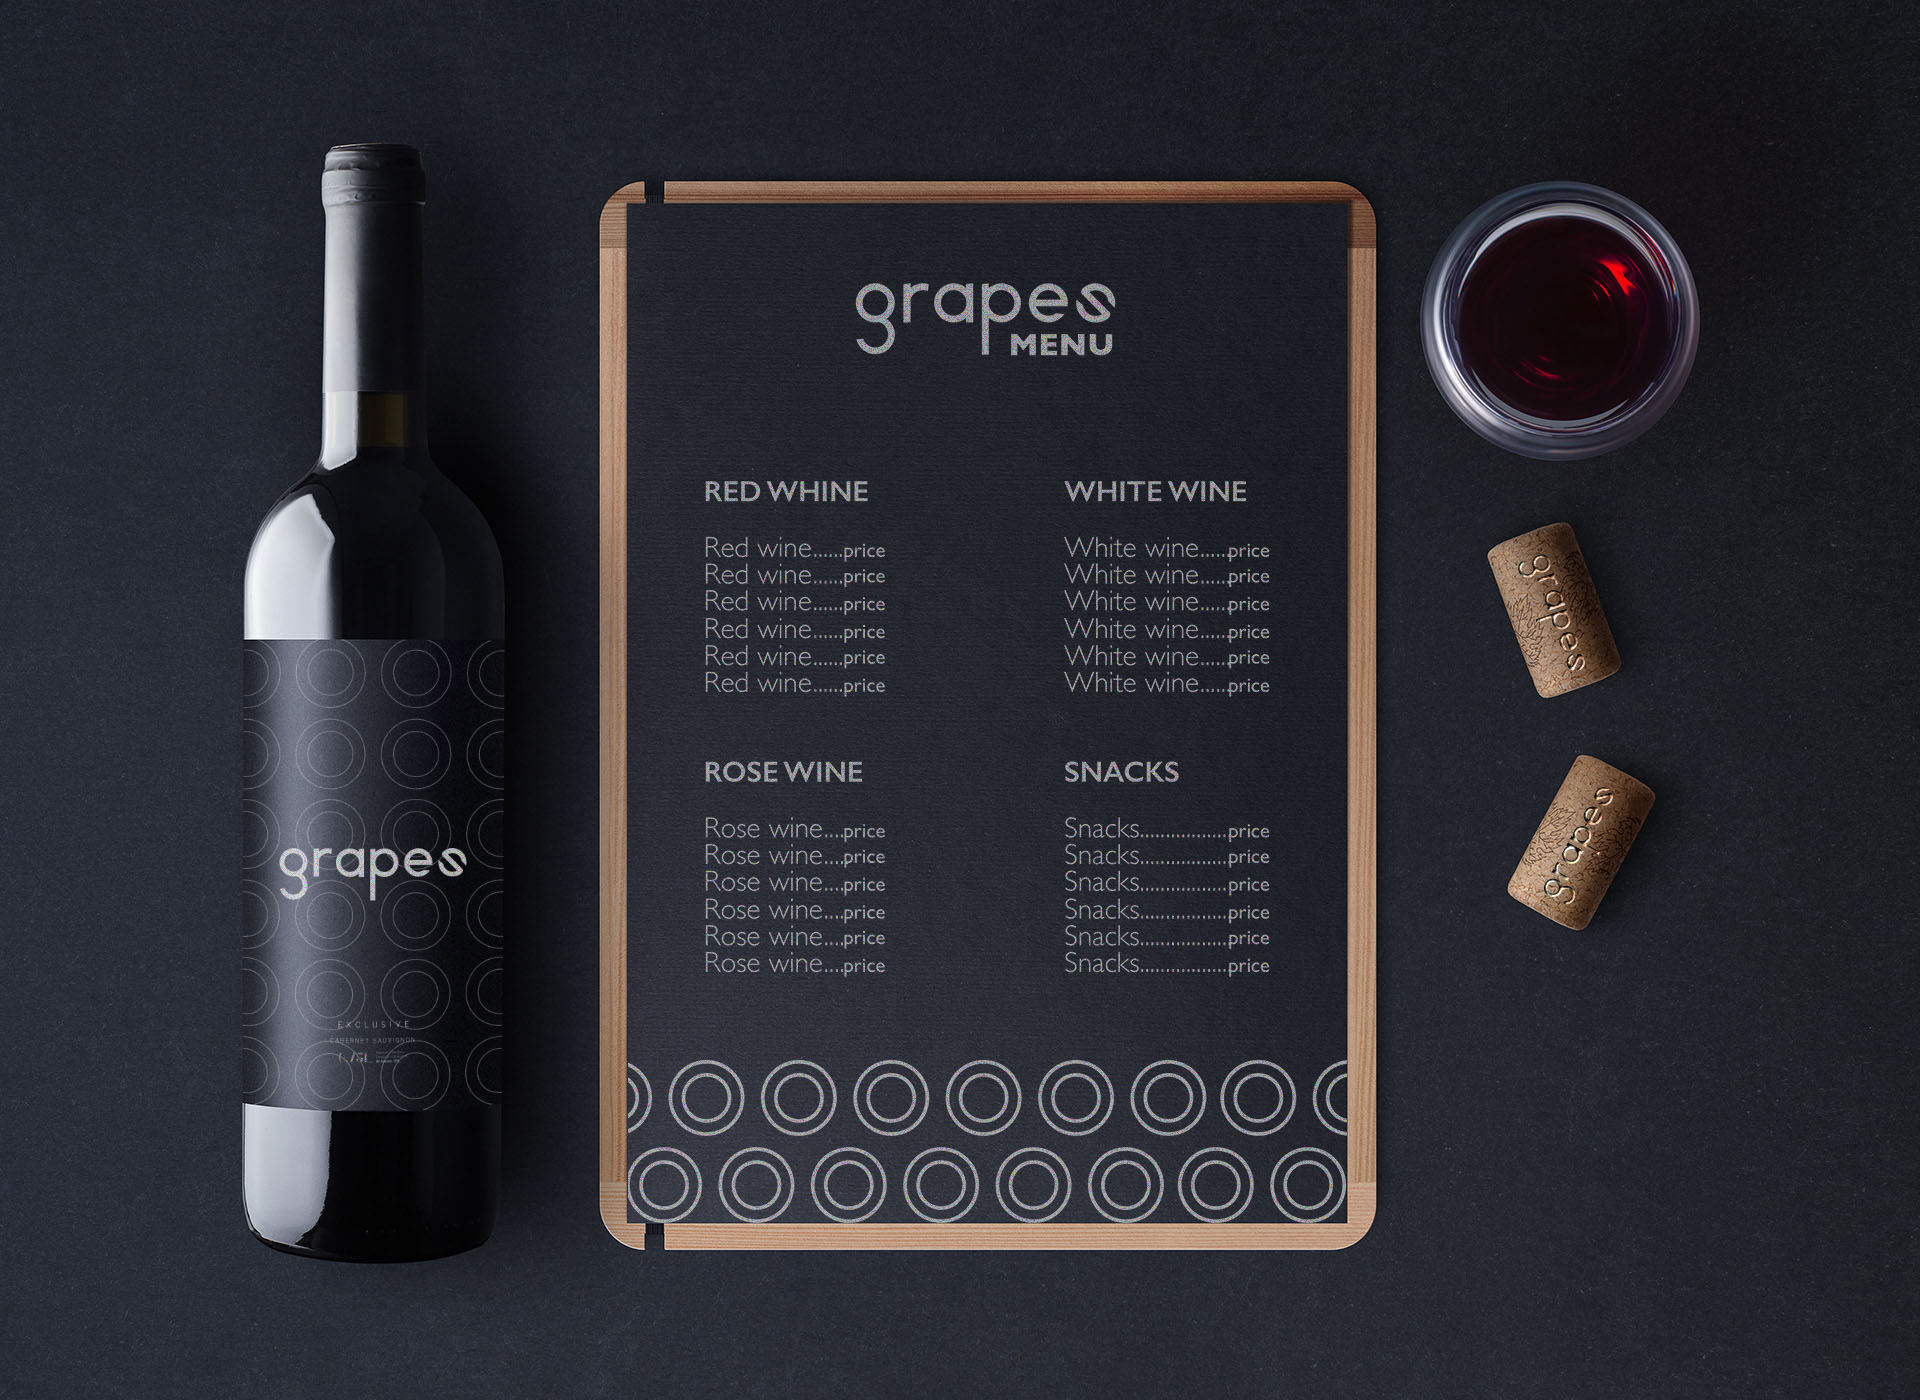 Grapes wine bar portfolio inoveo menu and wine bottles